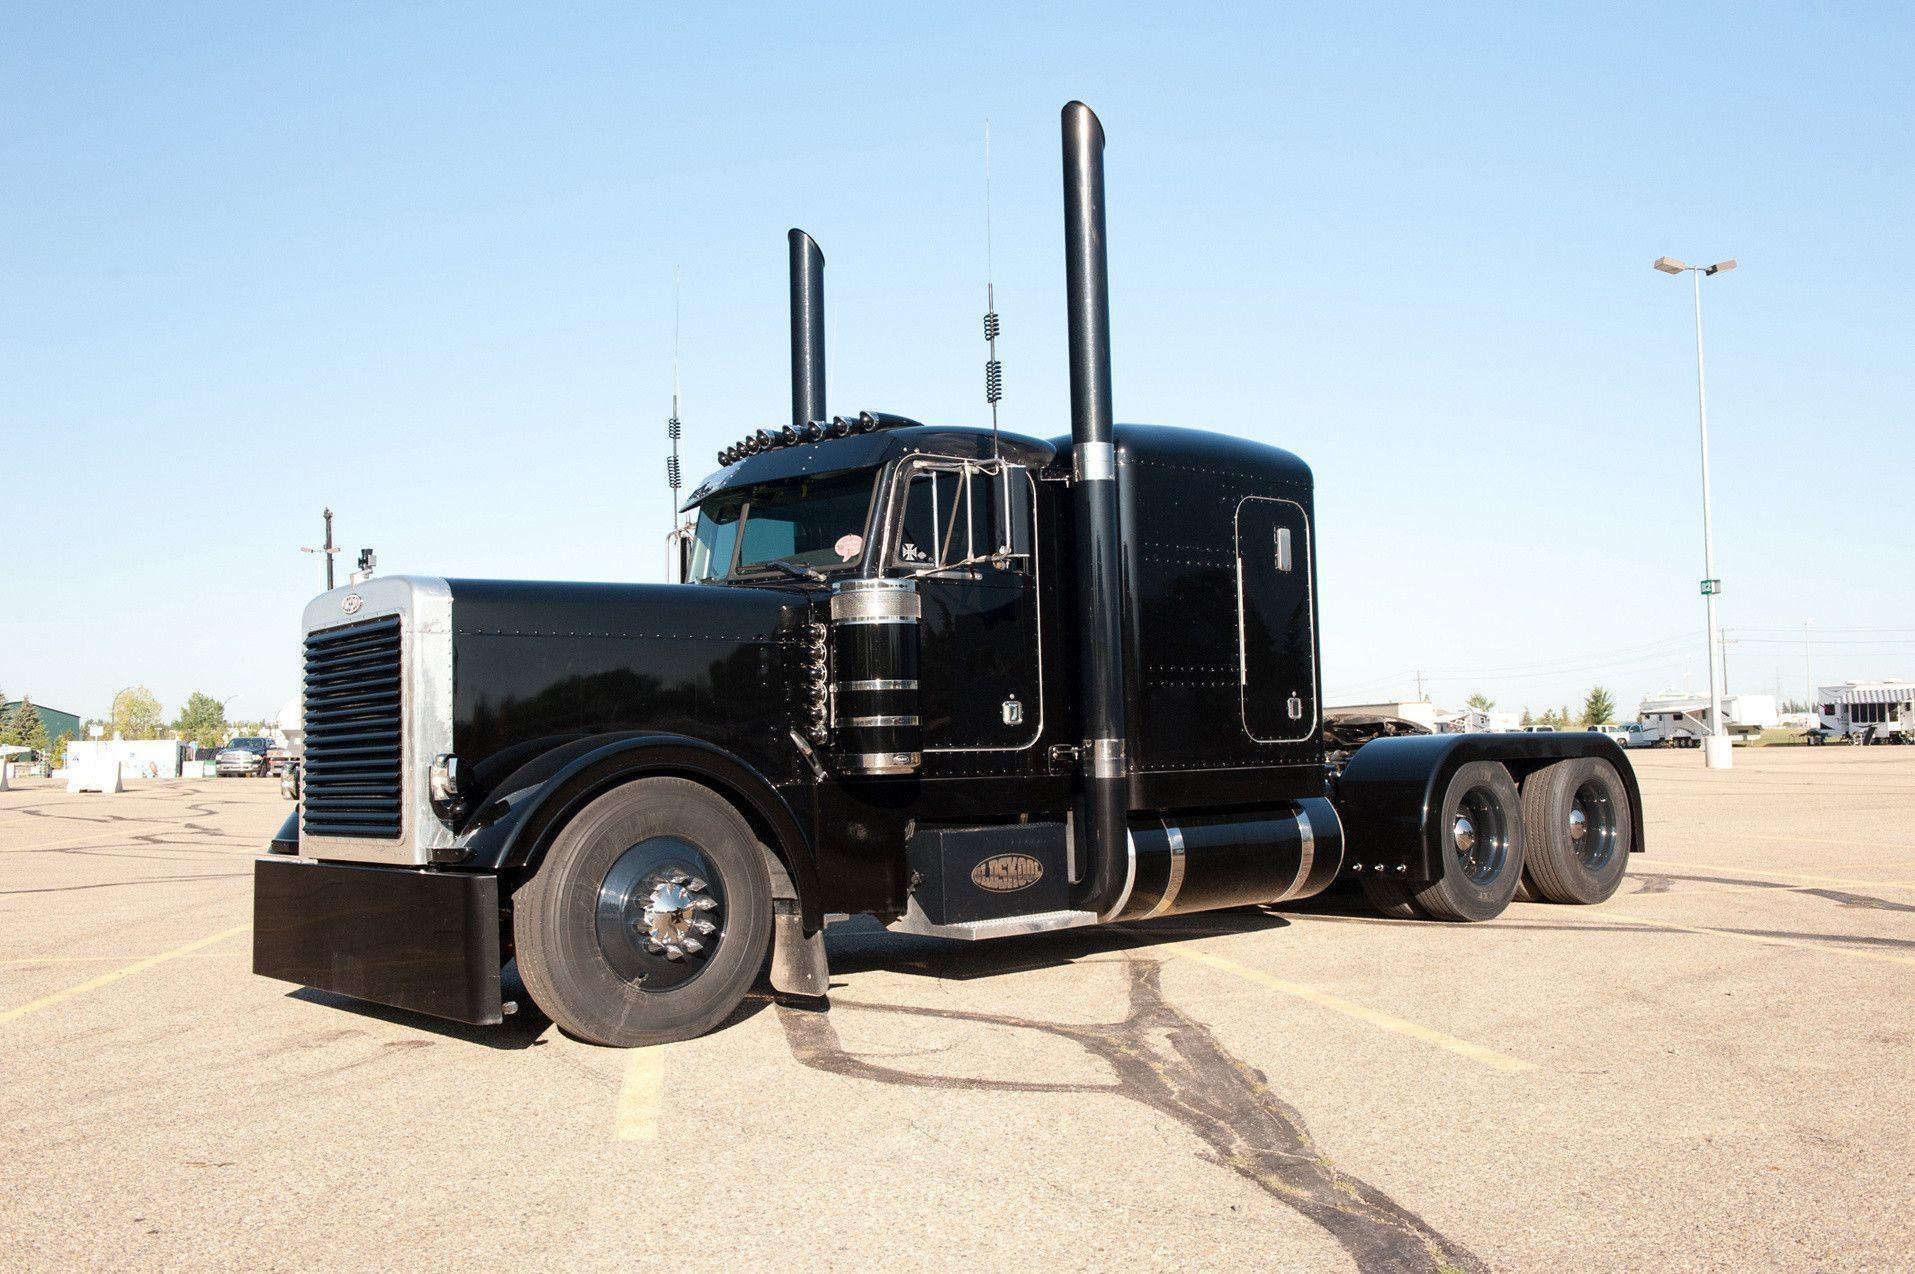 peterbilt wallpapers | WallpaperUP